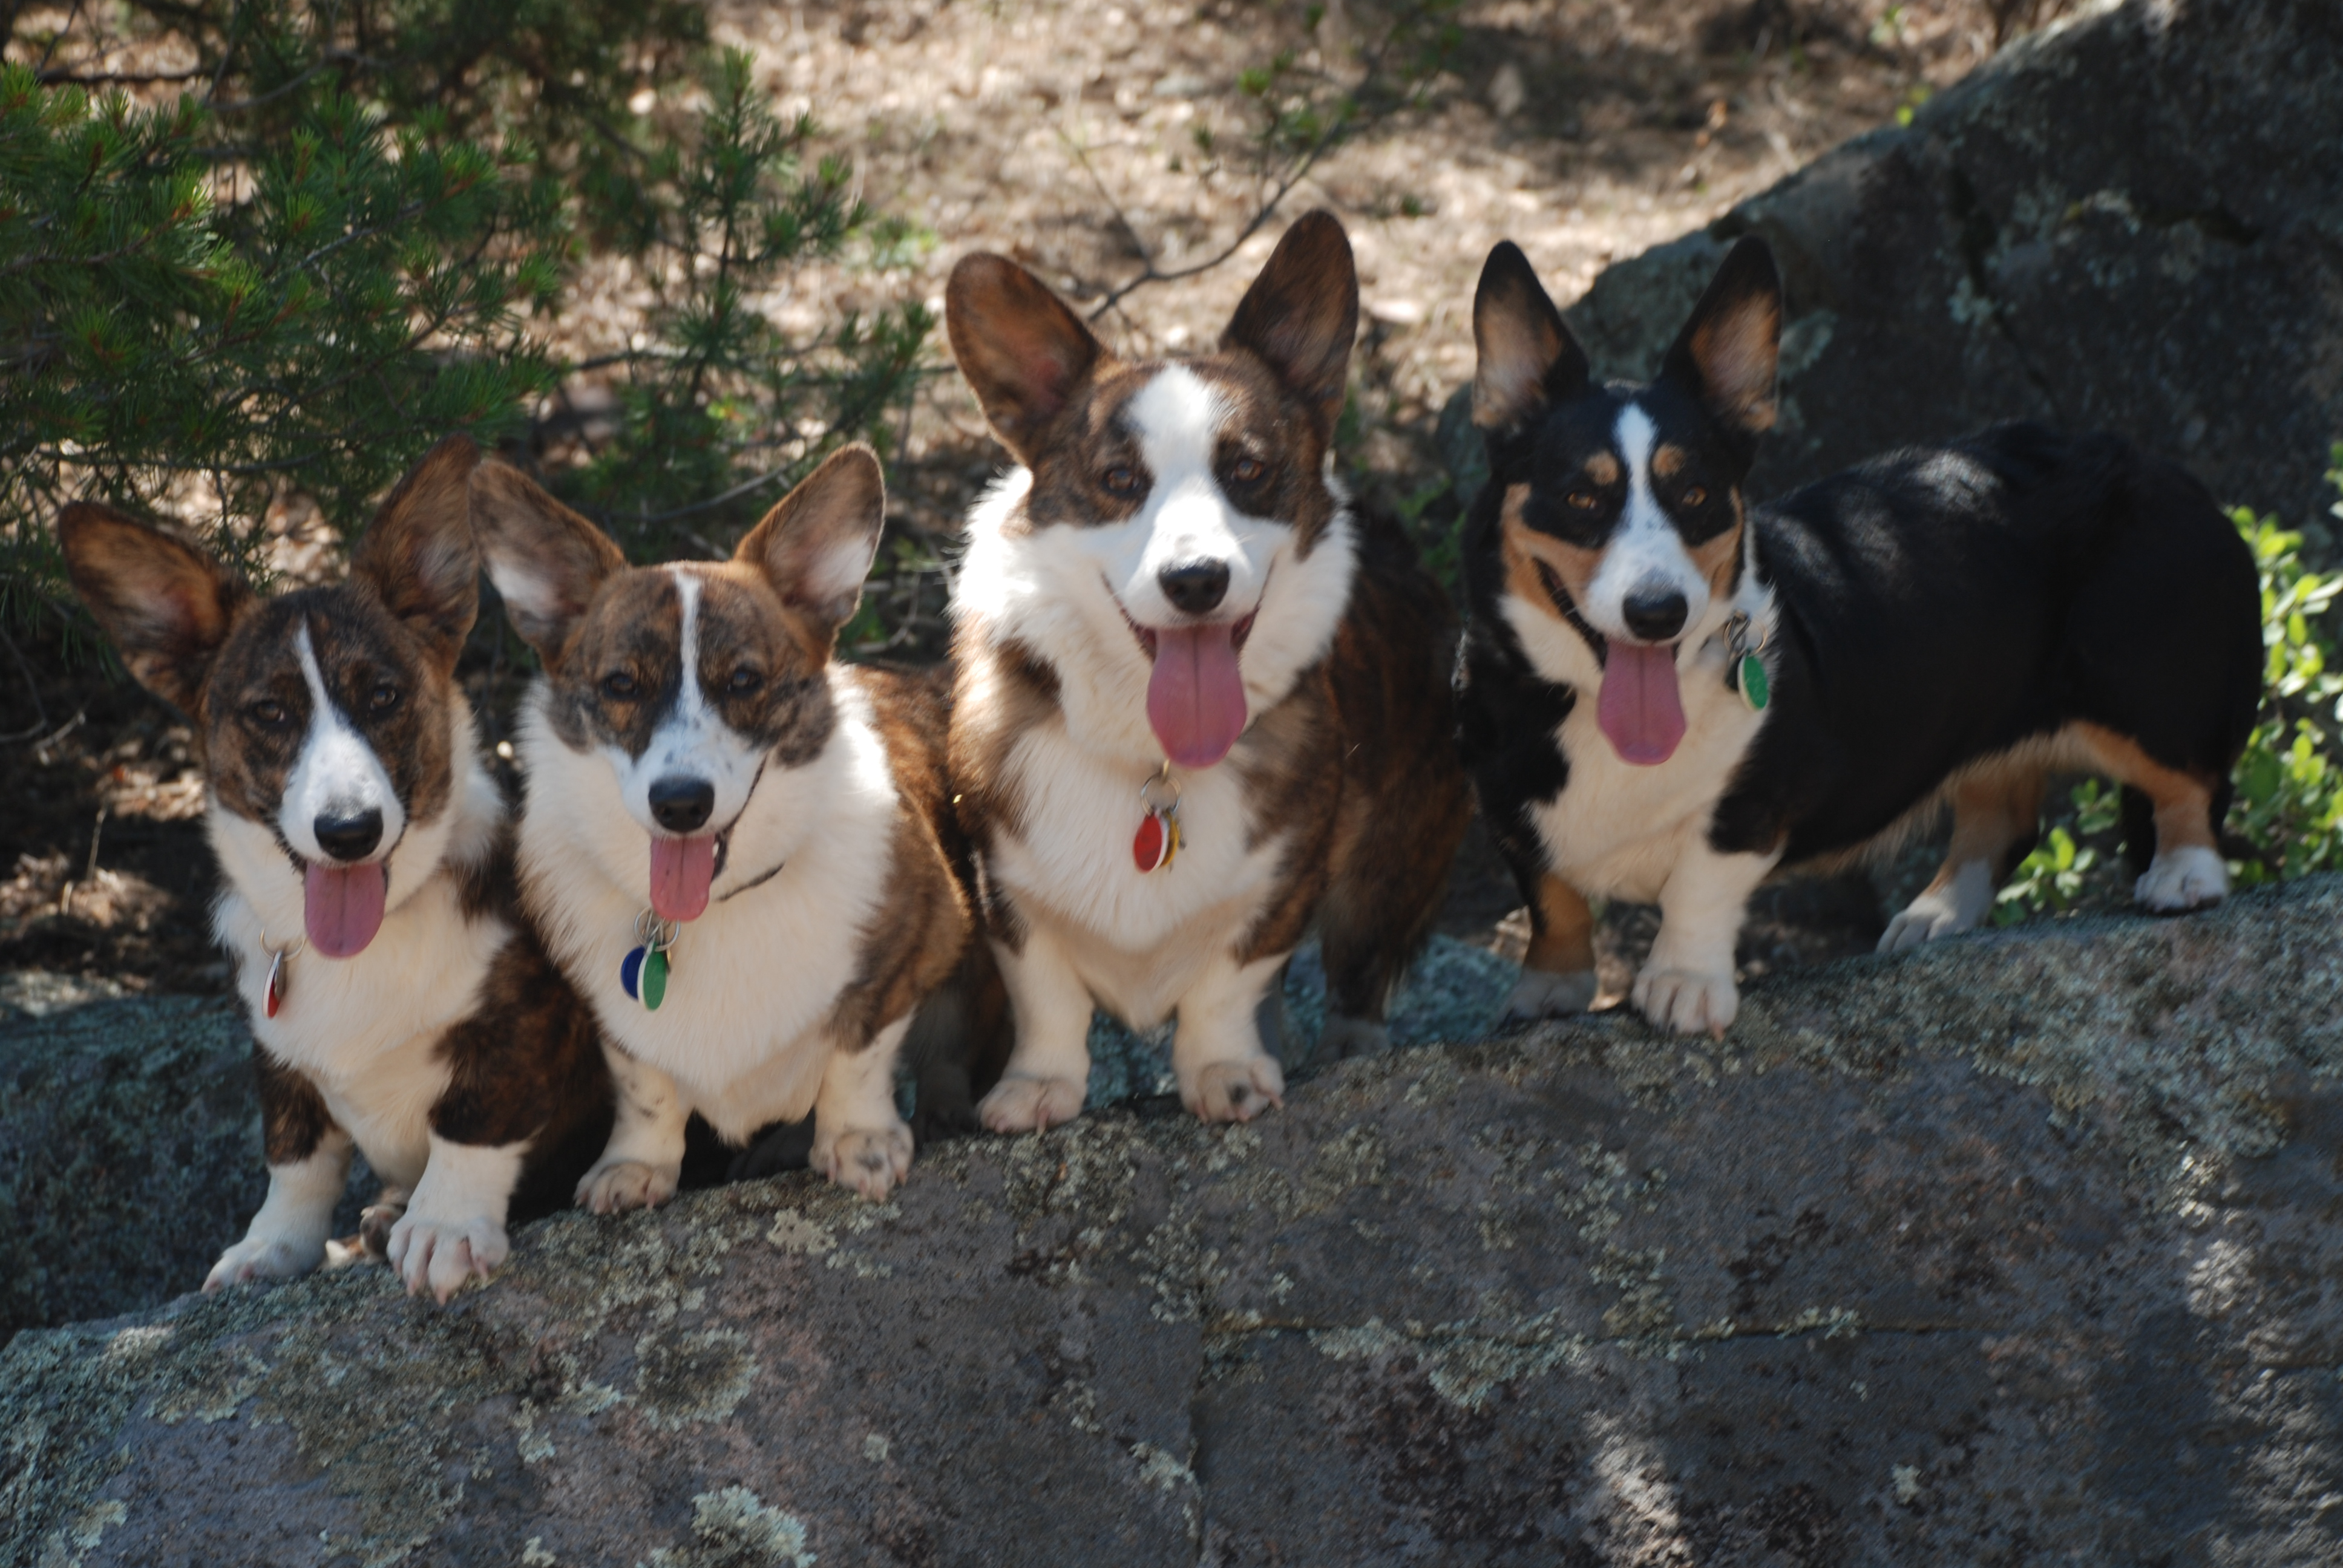 Bailey, Frost, PJ and Lindy